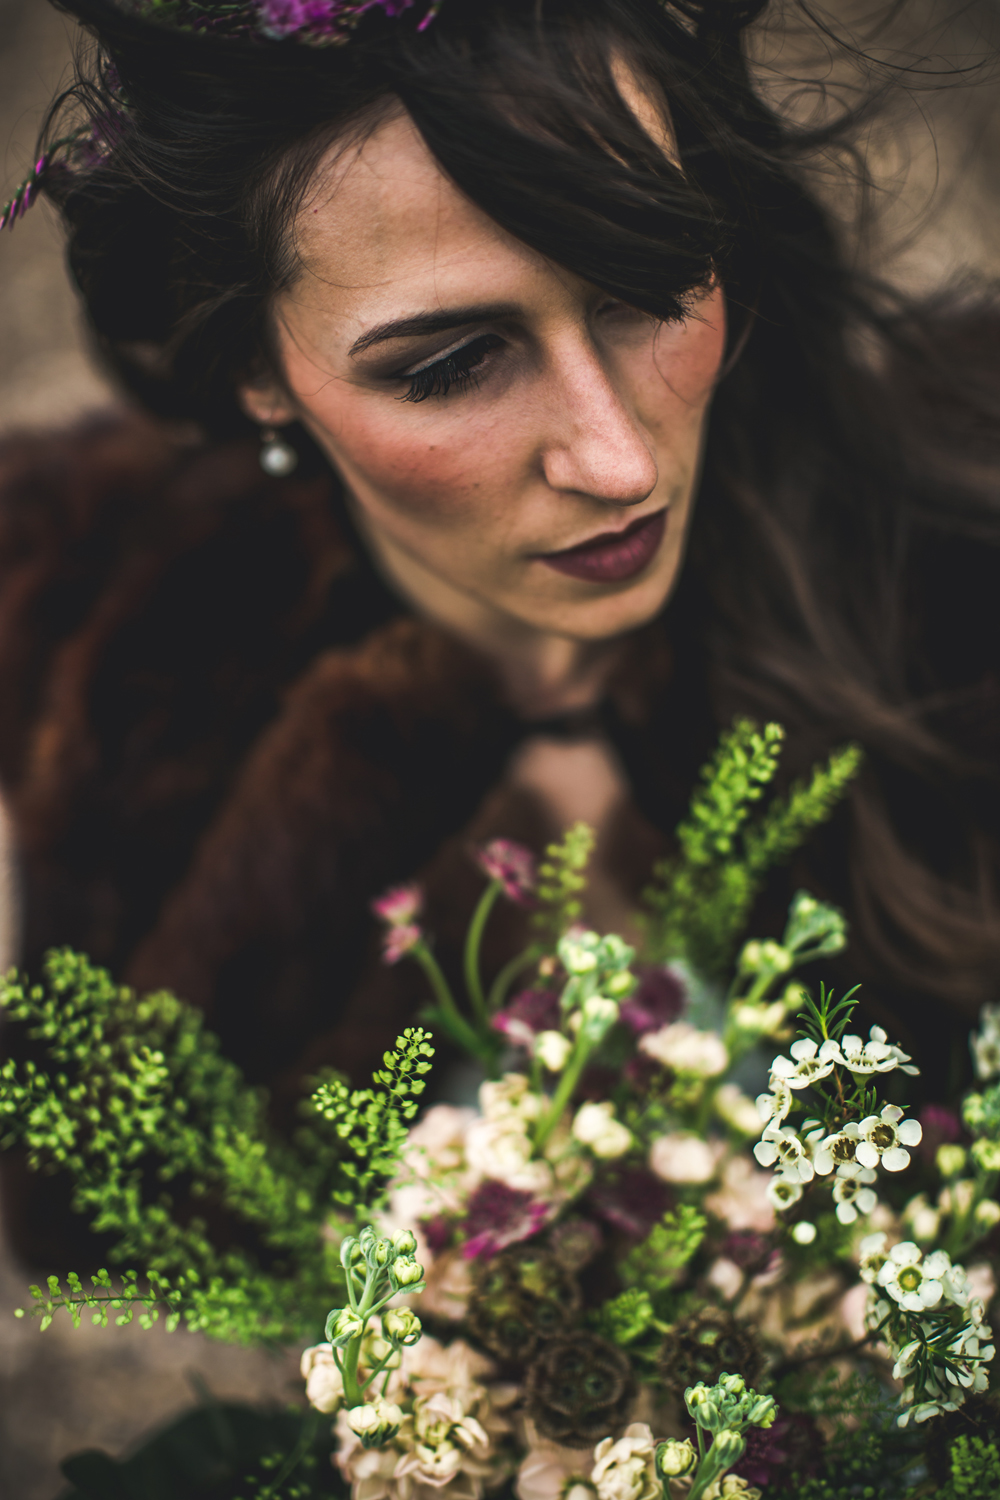 Rustic Vintage wedding photographers sheffield  (39).jpg